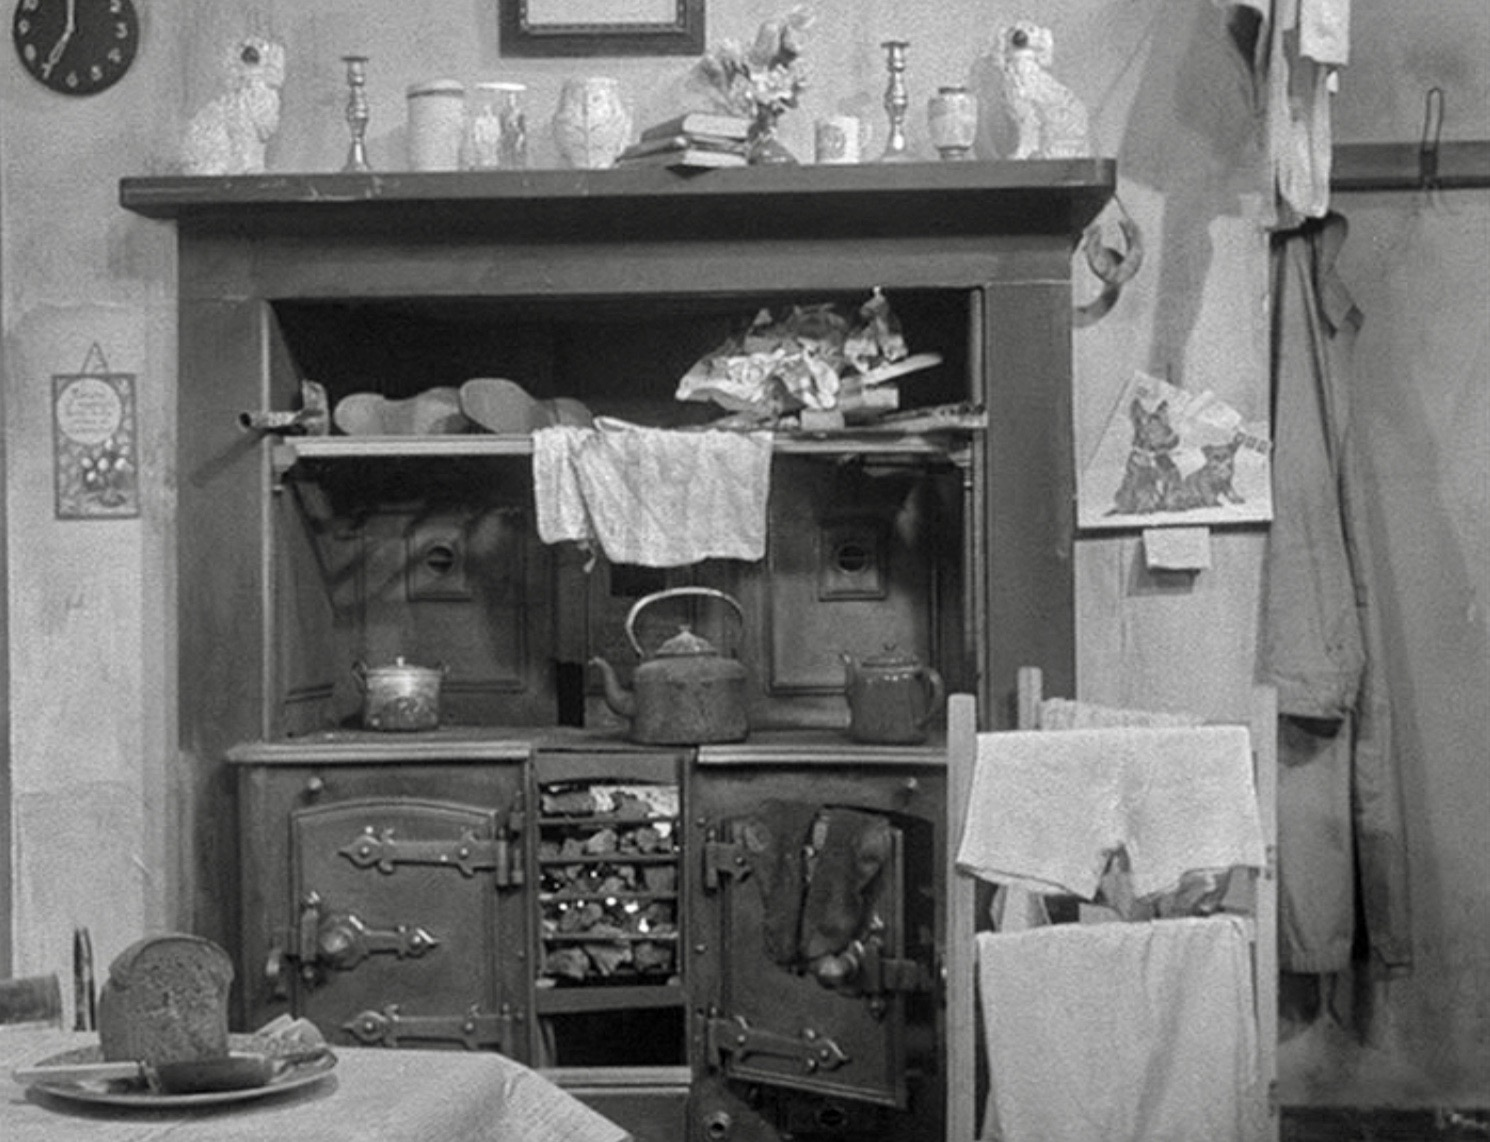 A dark, crowded interior in need of updating in Mony a Pickle (1938).